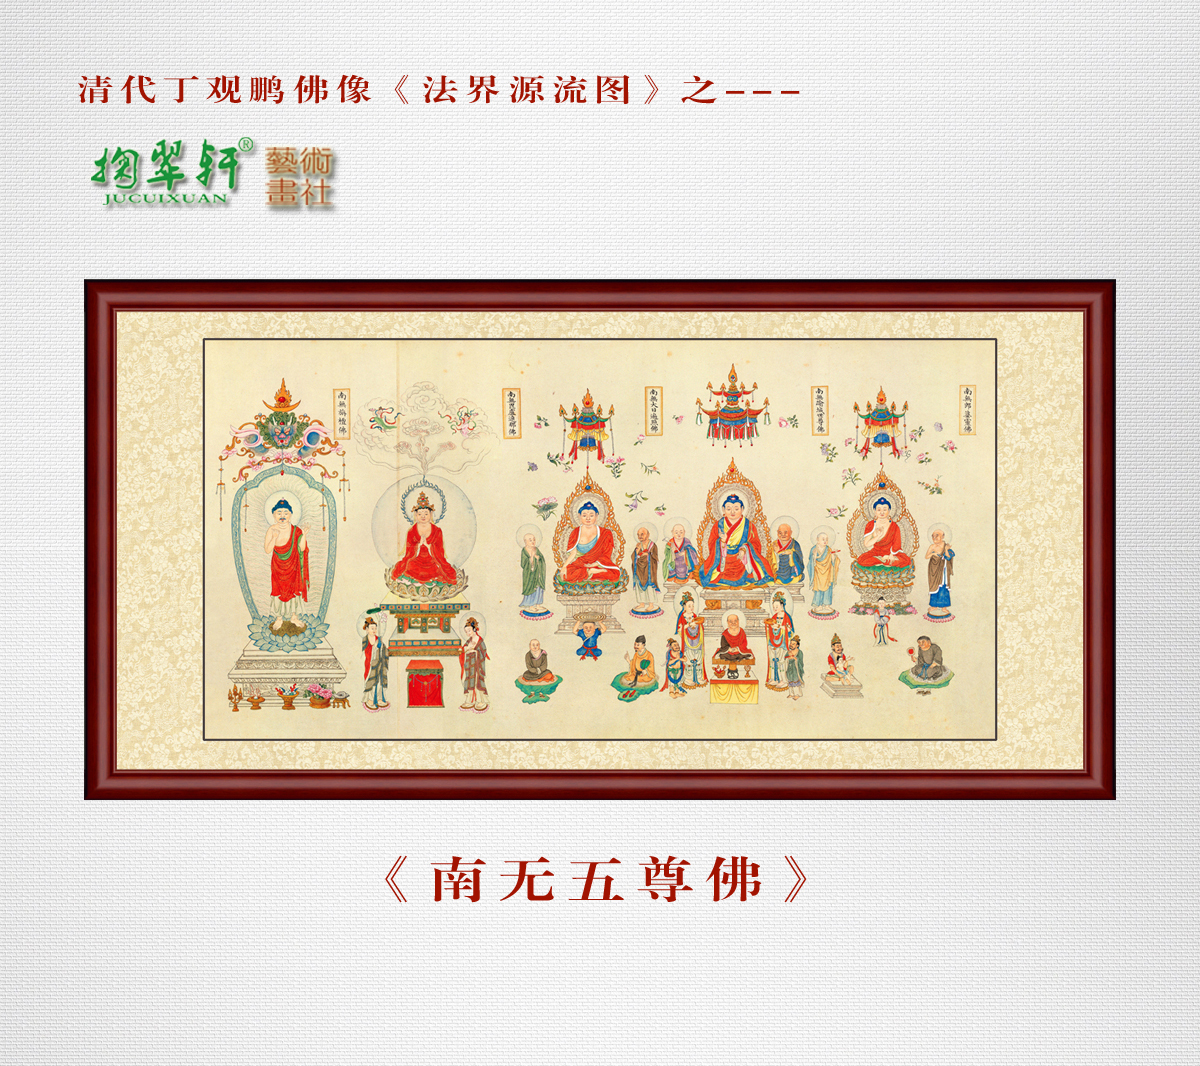 Ding guanpeng dharma origins figureè±å¯¸five tuo buddha portrait namo buddha paintings living room dining room wood frame decorative painting